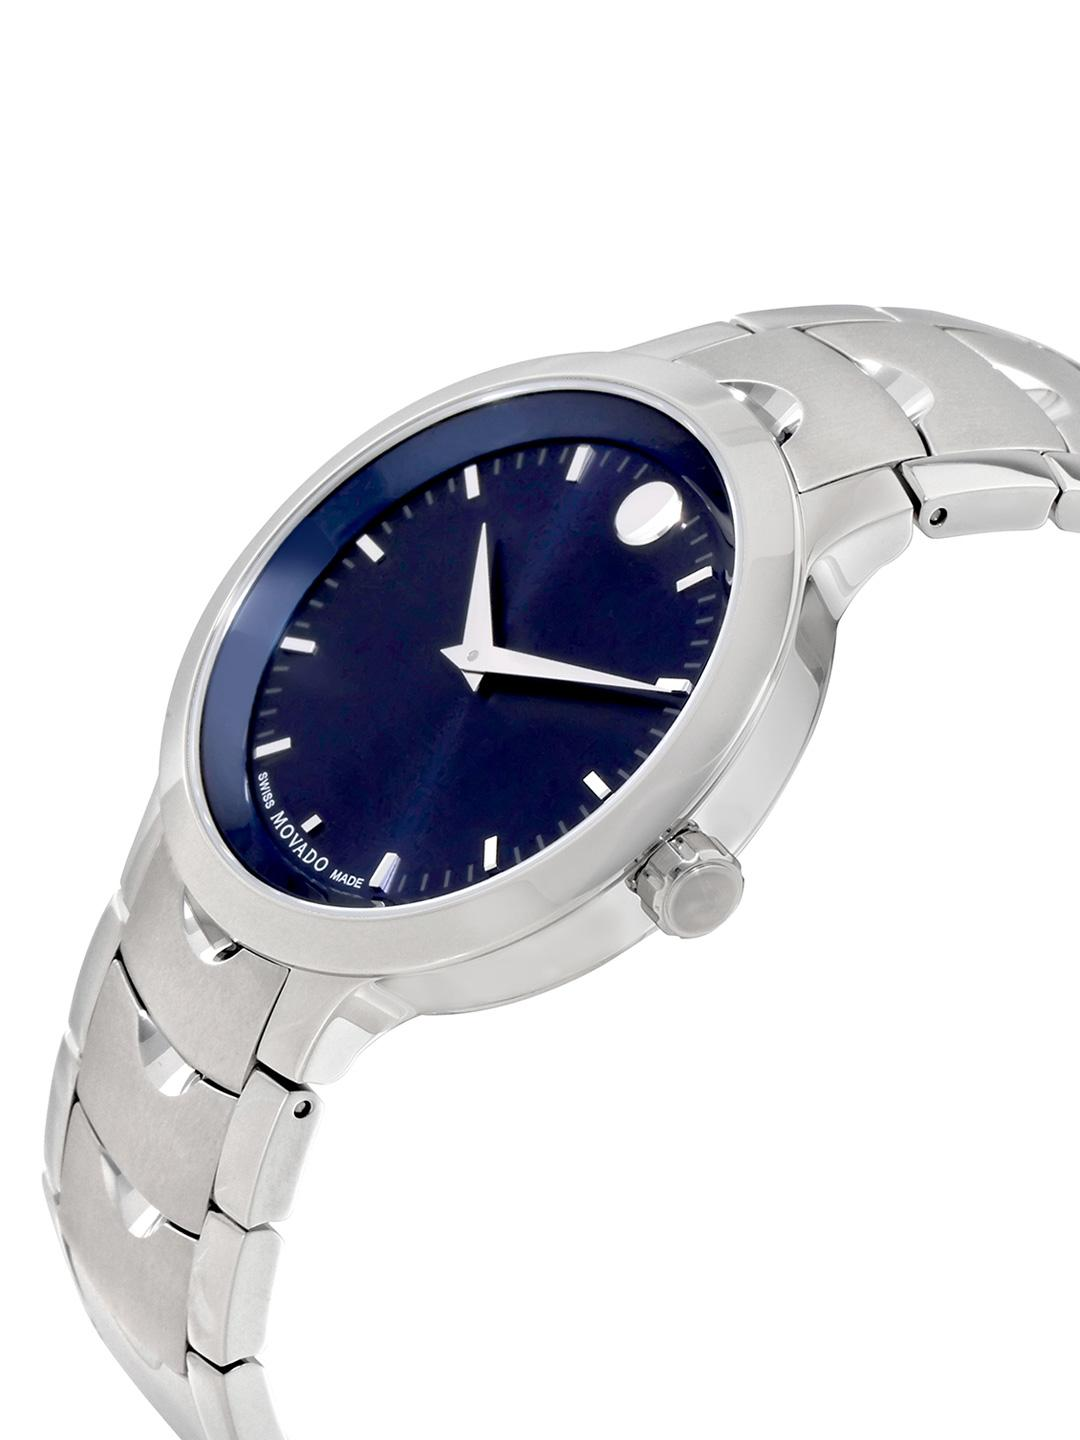 mens swiss watches luna men luno product made movado stainless watch steel bright s